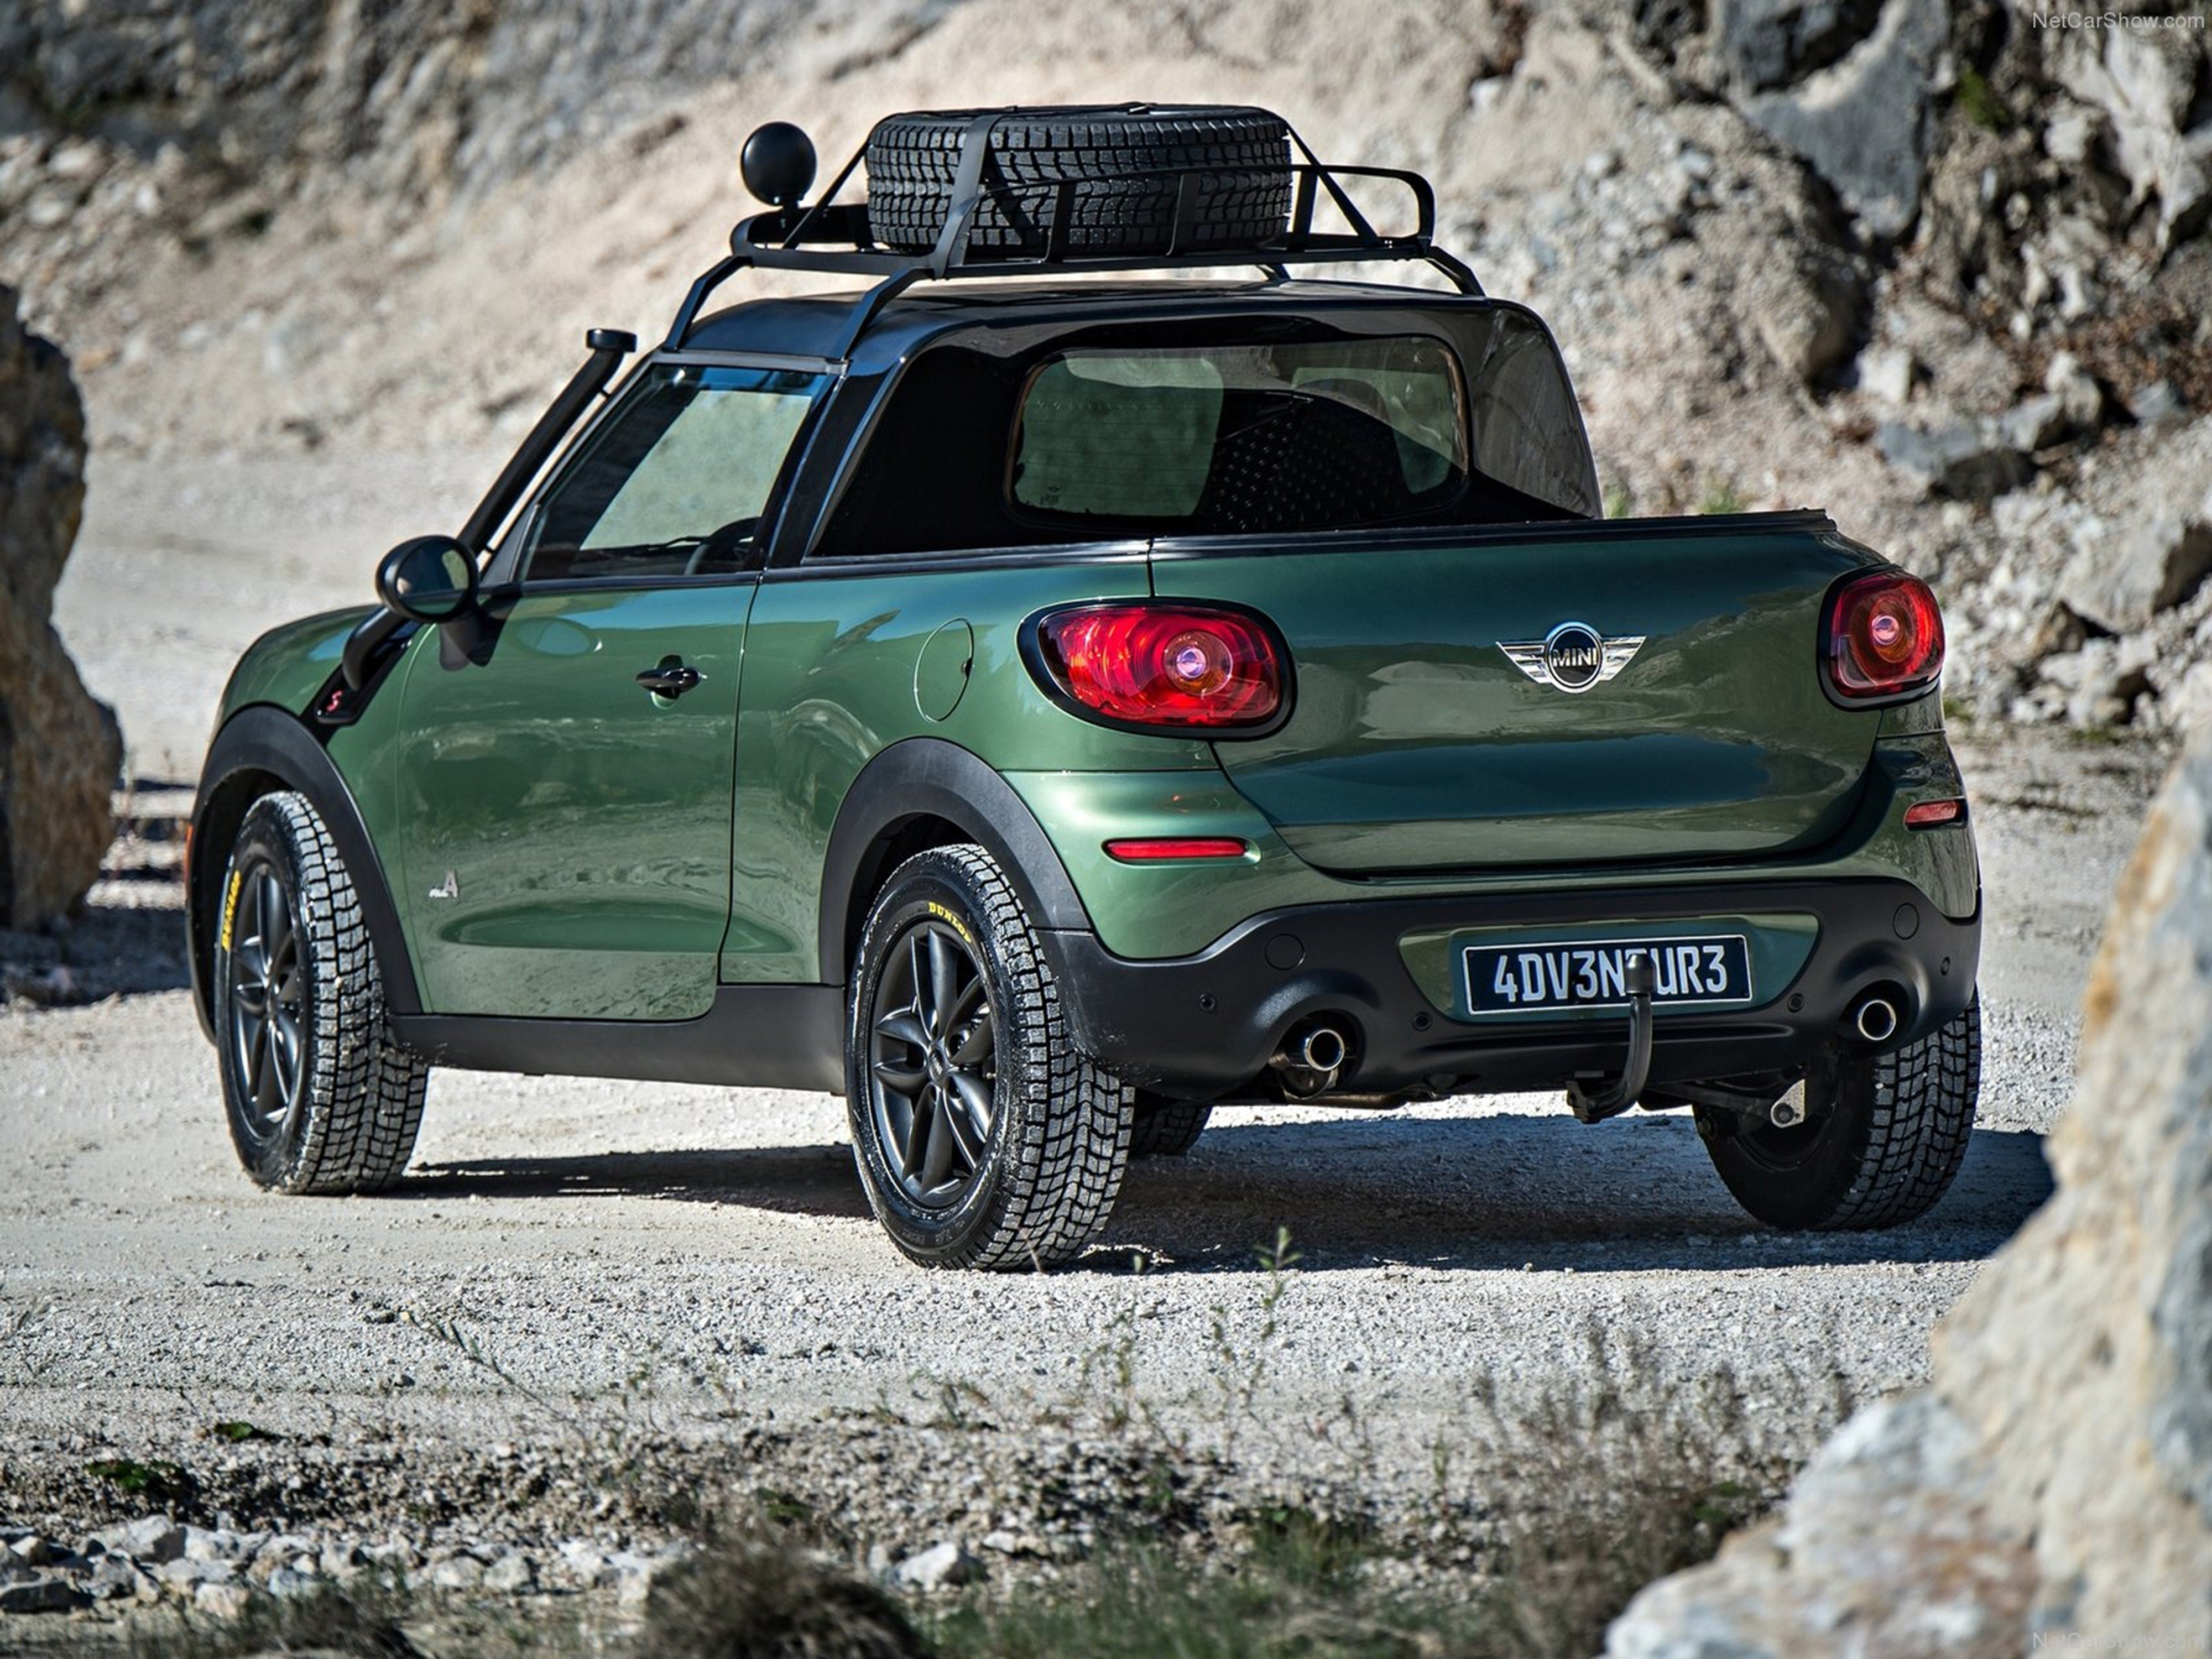 mini paceman adventure concept 2014 car 4x4 off road 4000x3000 wallpaper 4000x3000 355450. Black Bedroom Furniture Sets. Home Design Ideas